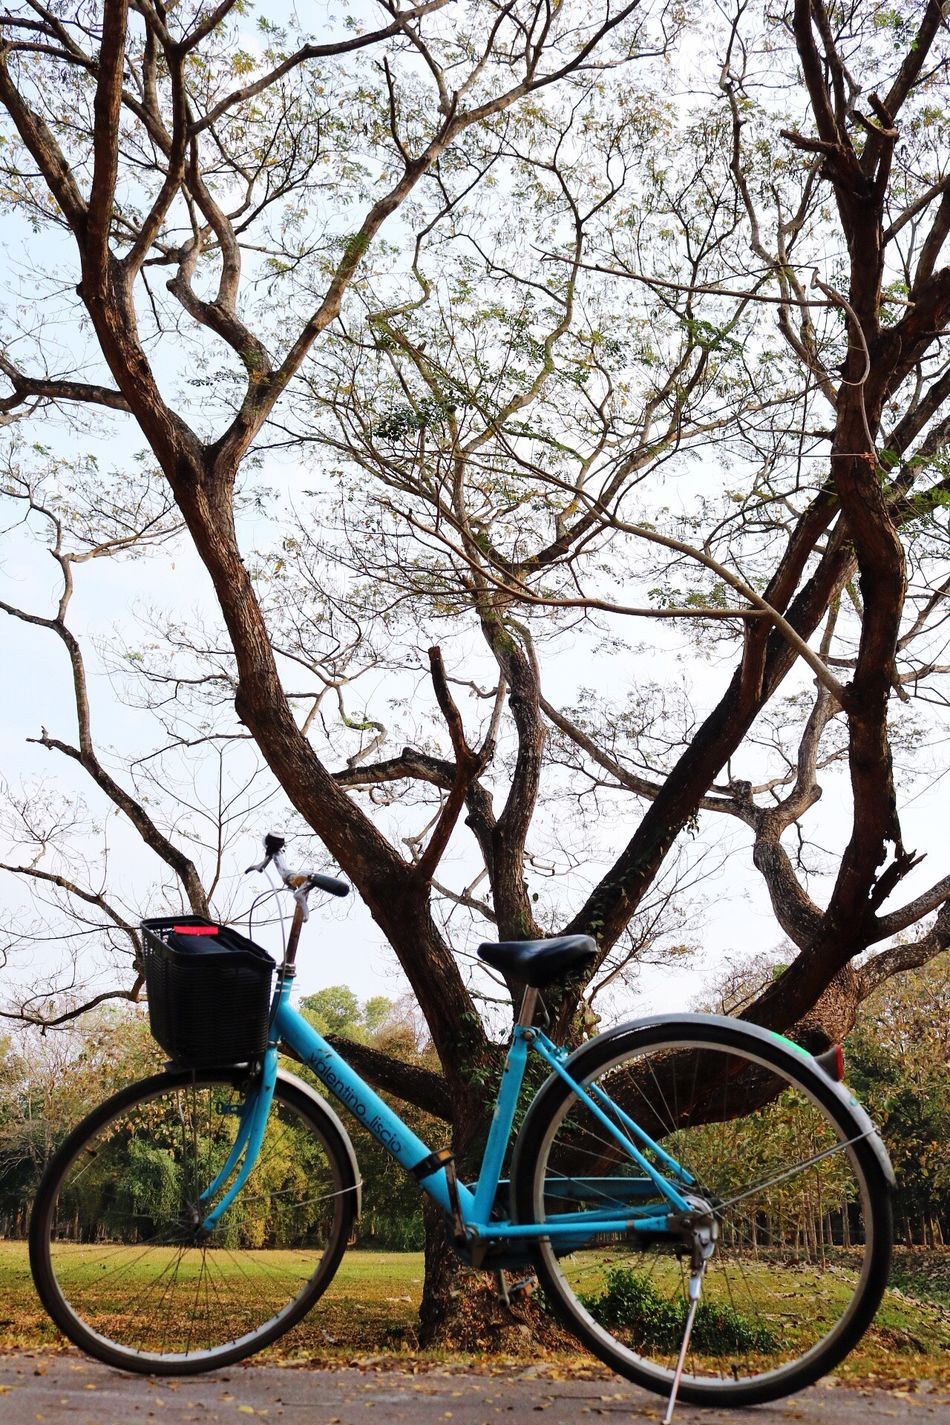 Bicycle Tree Transportation Land Vehicle Mode Of Transport Outdoors Beauty In Nature Branch Stationary No People Day Sky